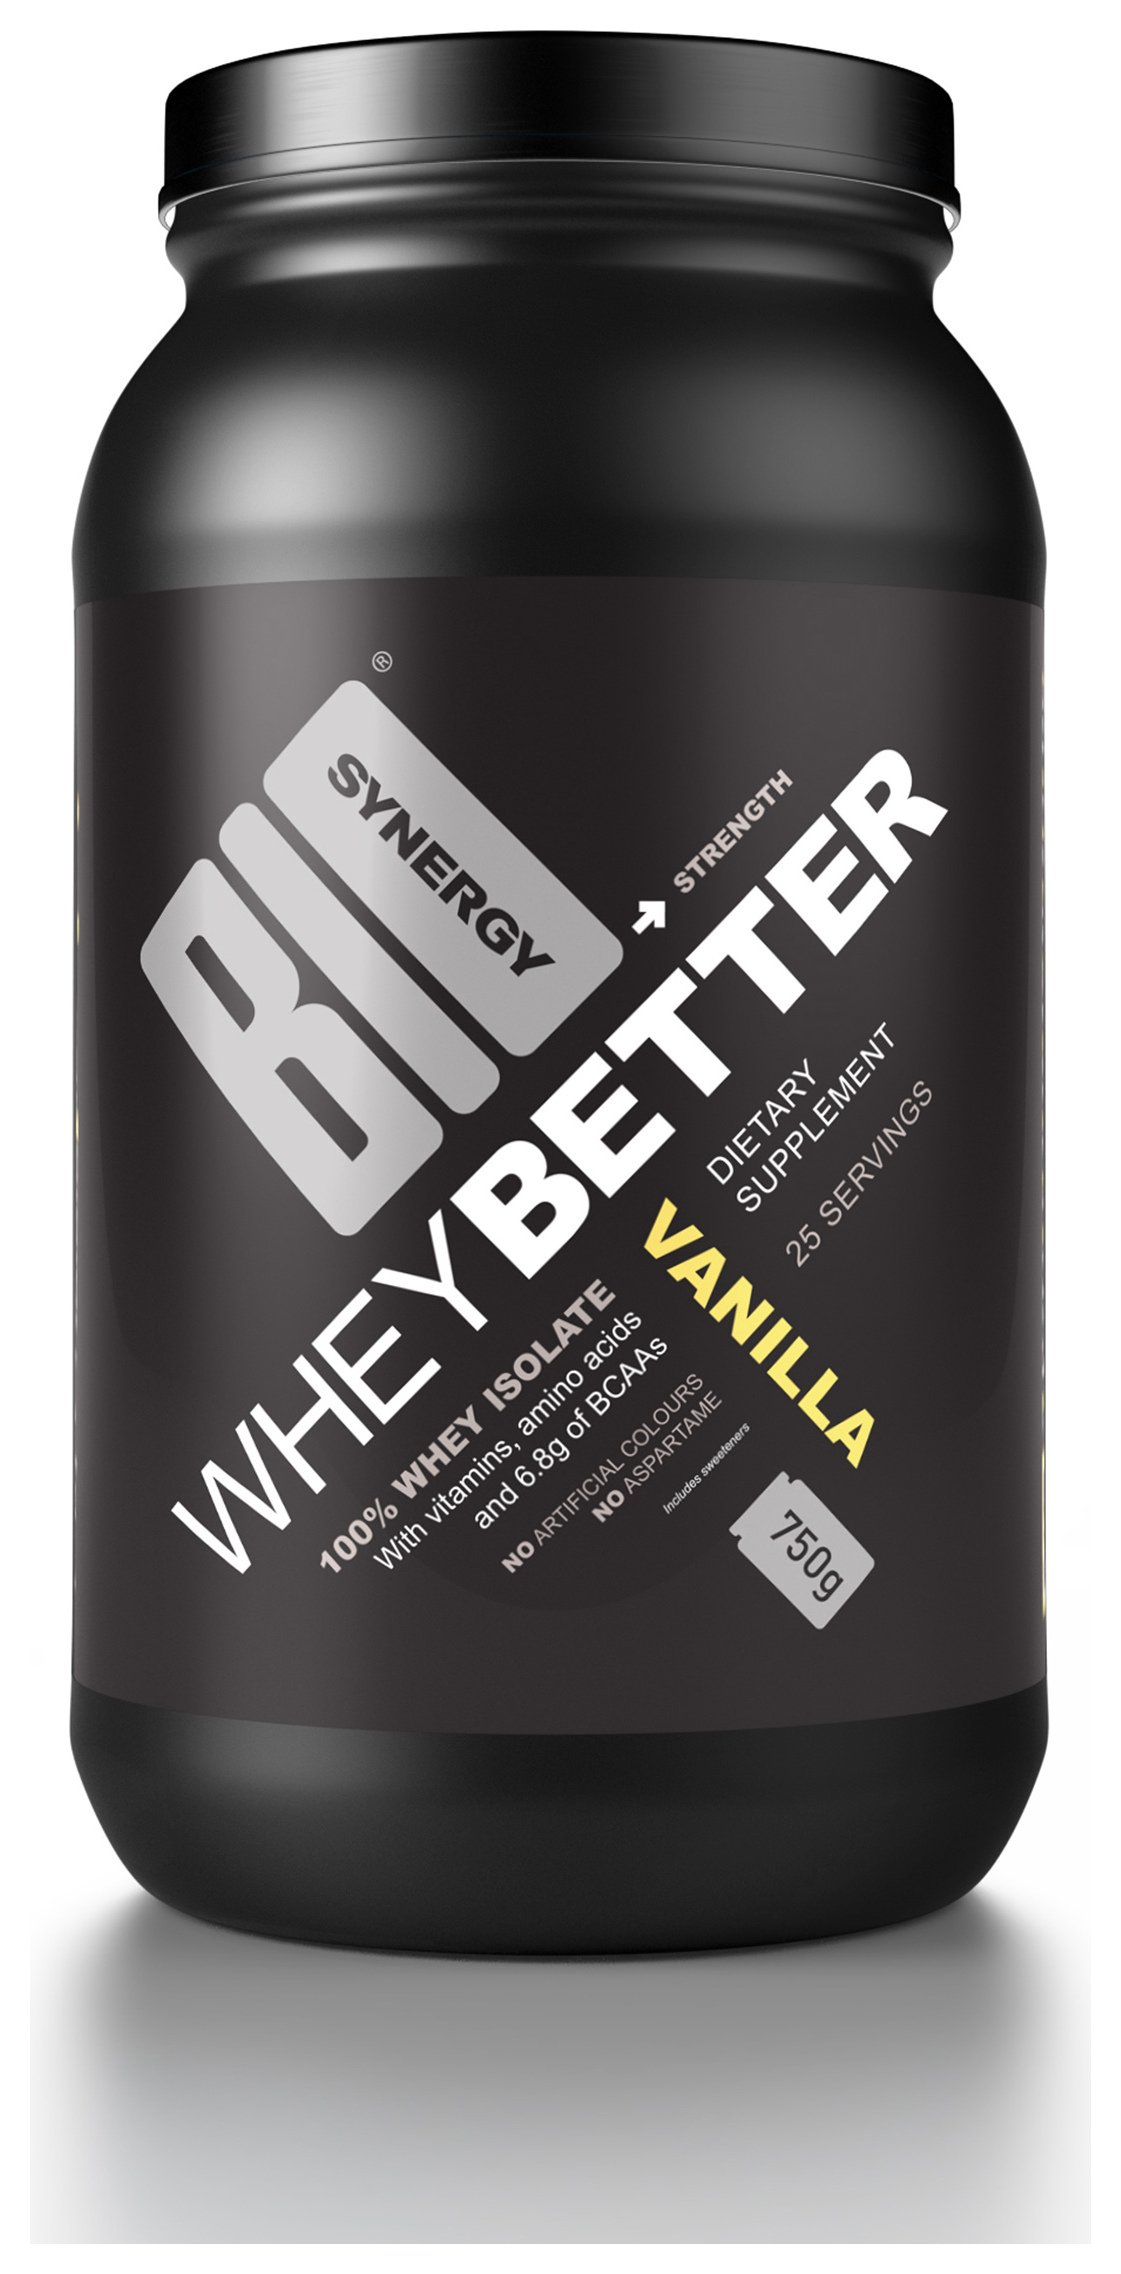 Image of Bio-Synergy Whey Better Protein Powder 750g - C and C.